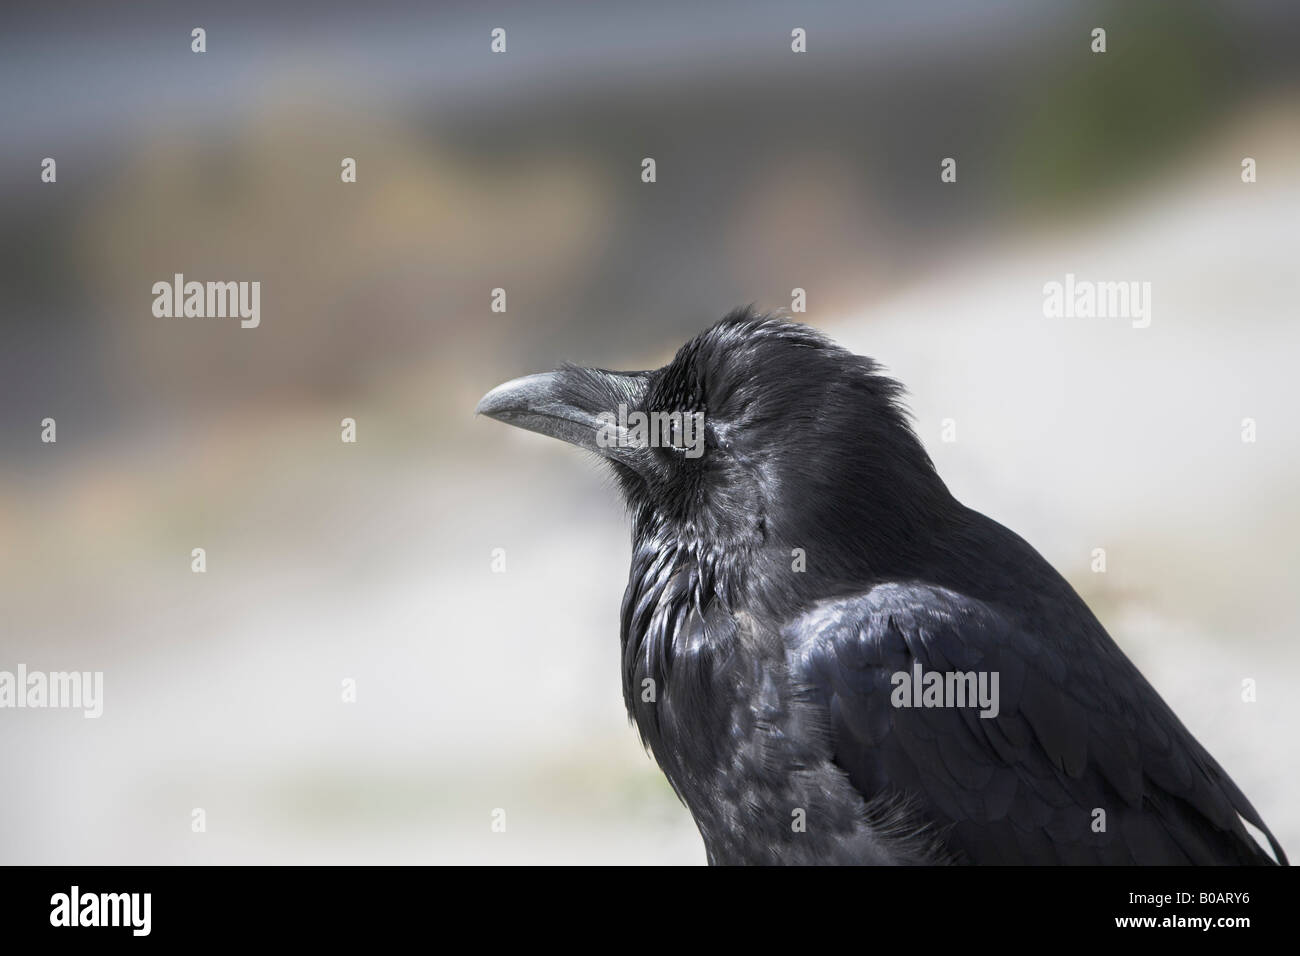 Black northern raven in reserve in Canada - Stock Image